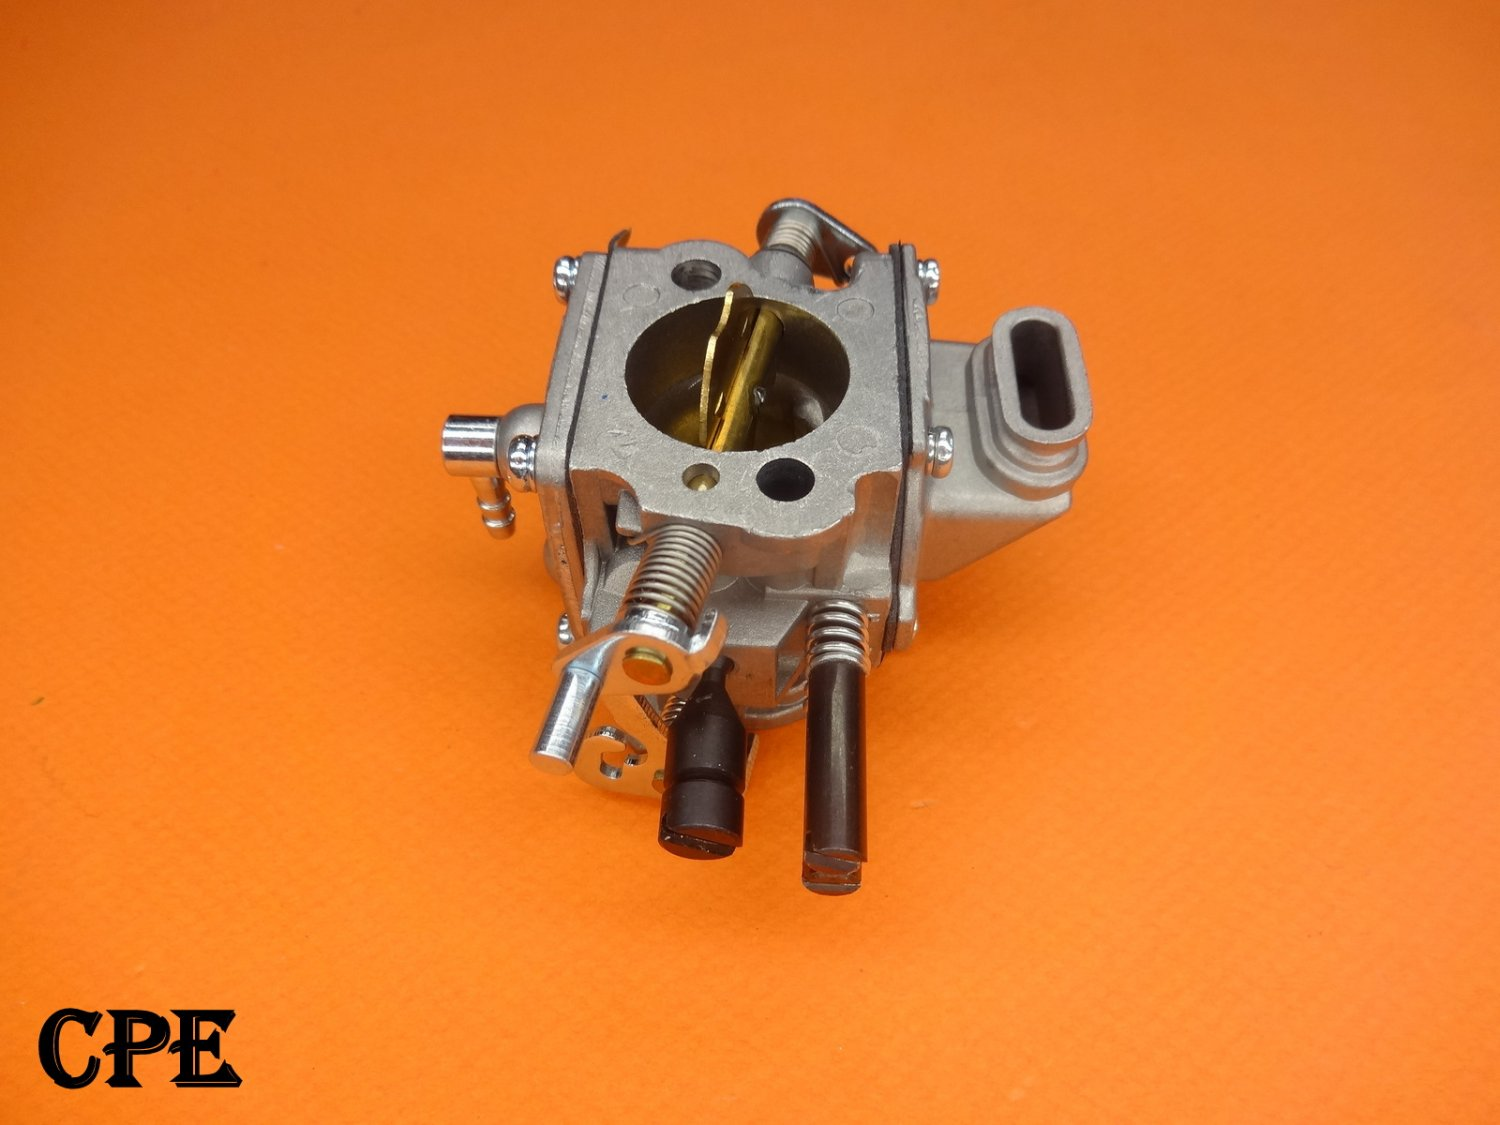 NEW REPLACEMENT CARBURETOR FOR STIHL 066 MS650 MS660 MS 650 660 CHAINSAW # 1122-120-0621